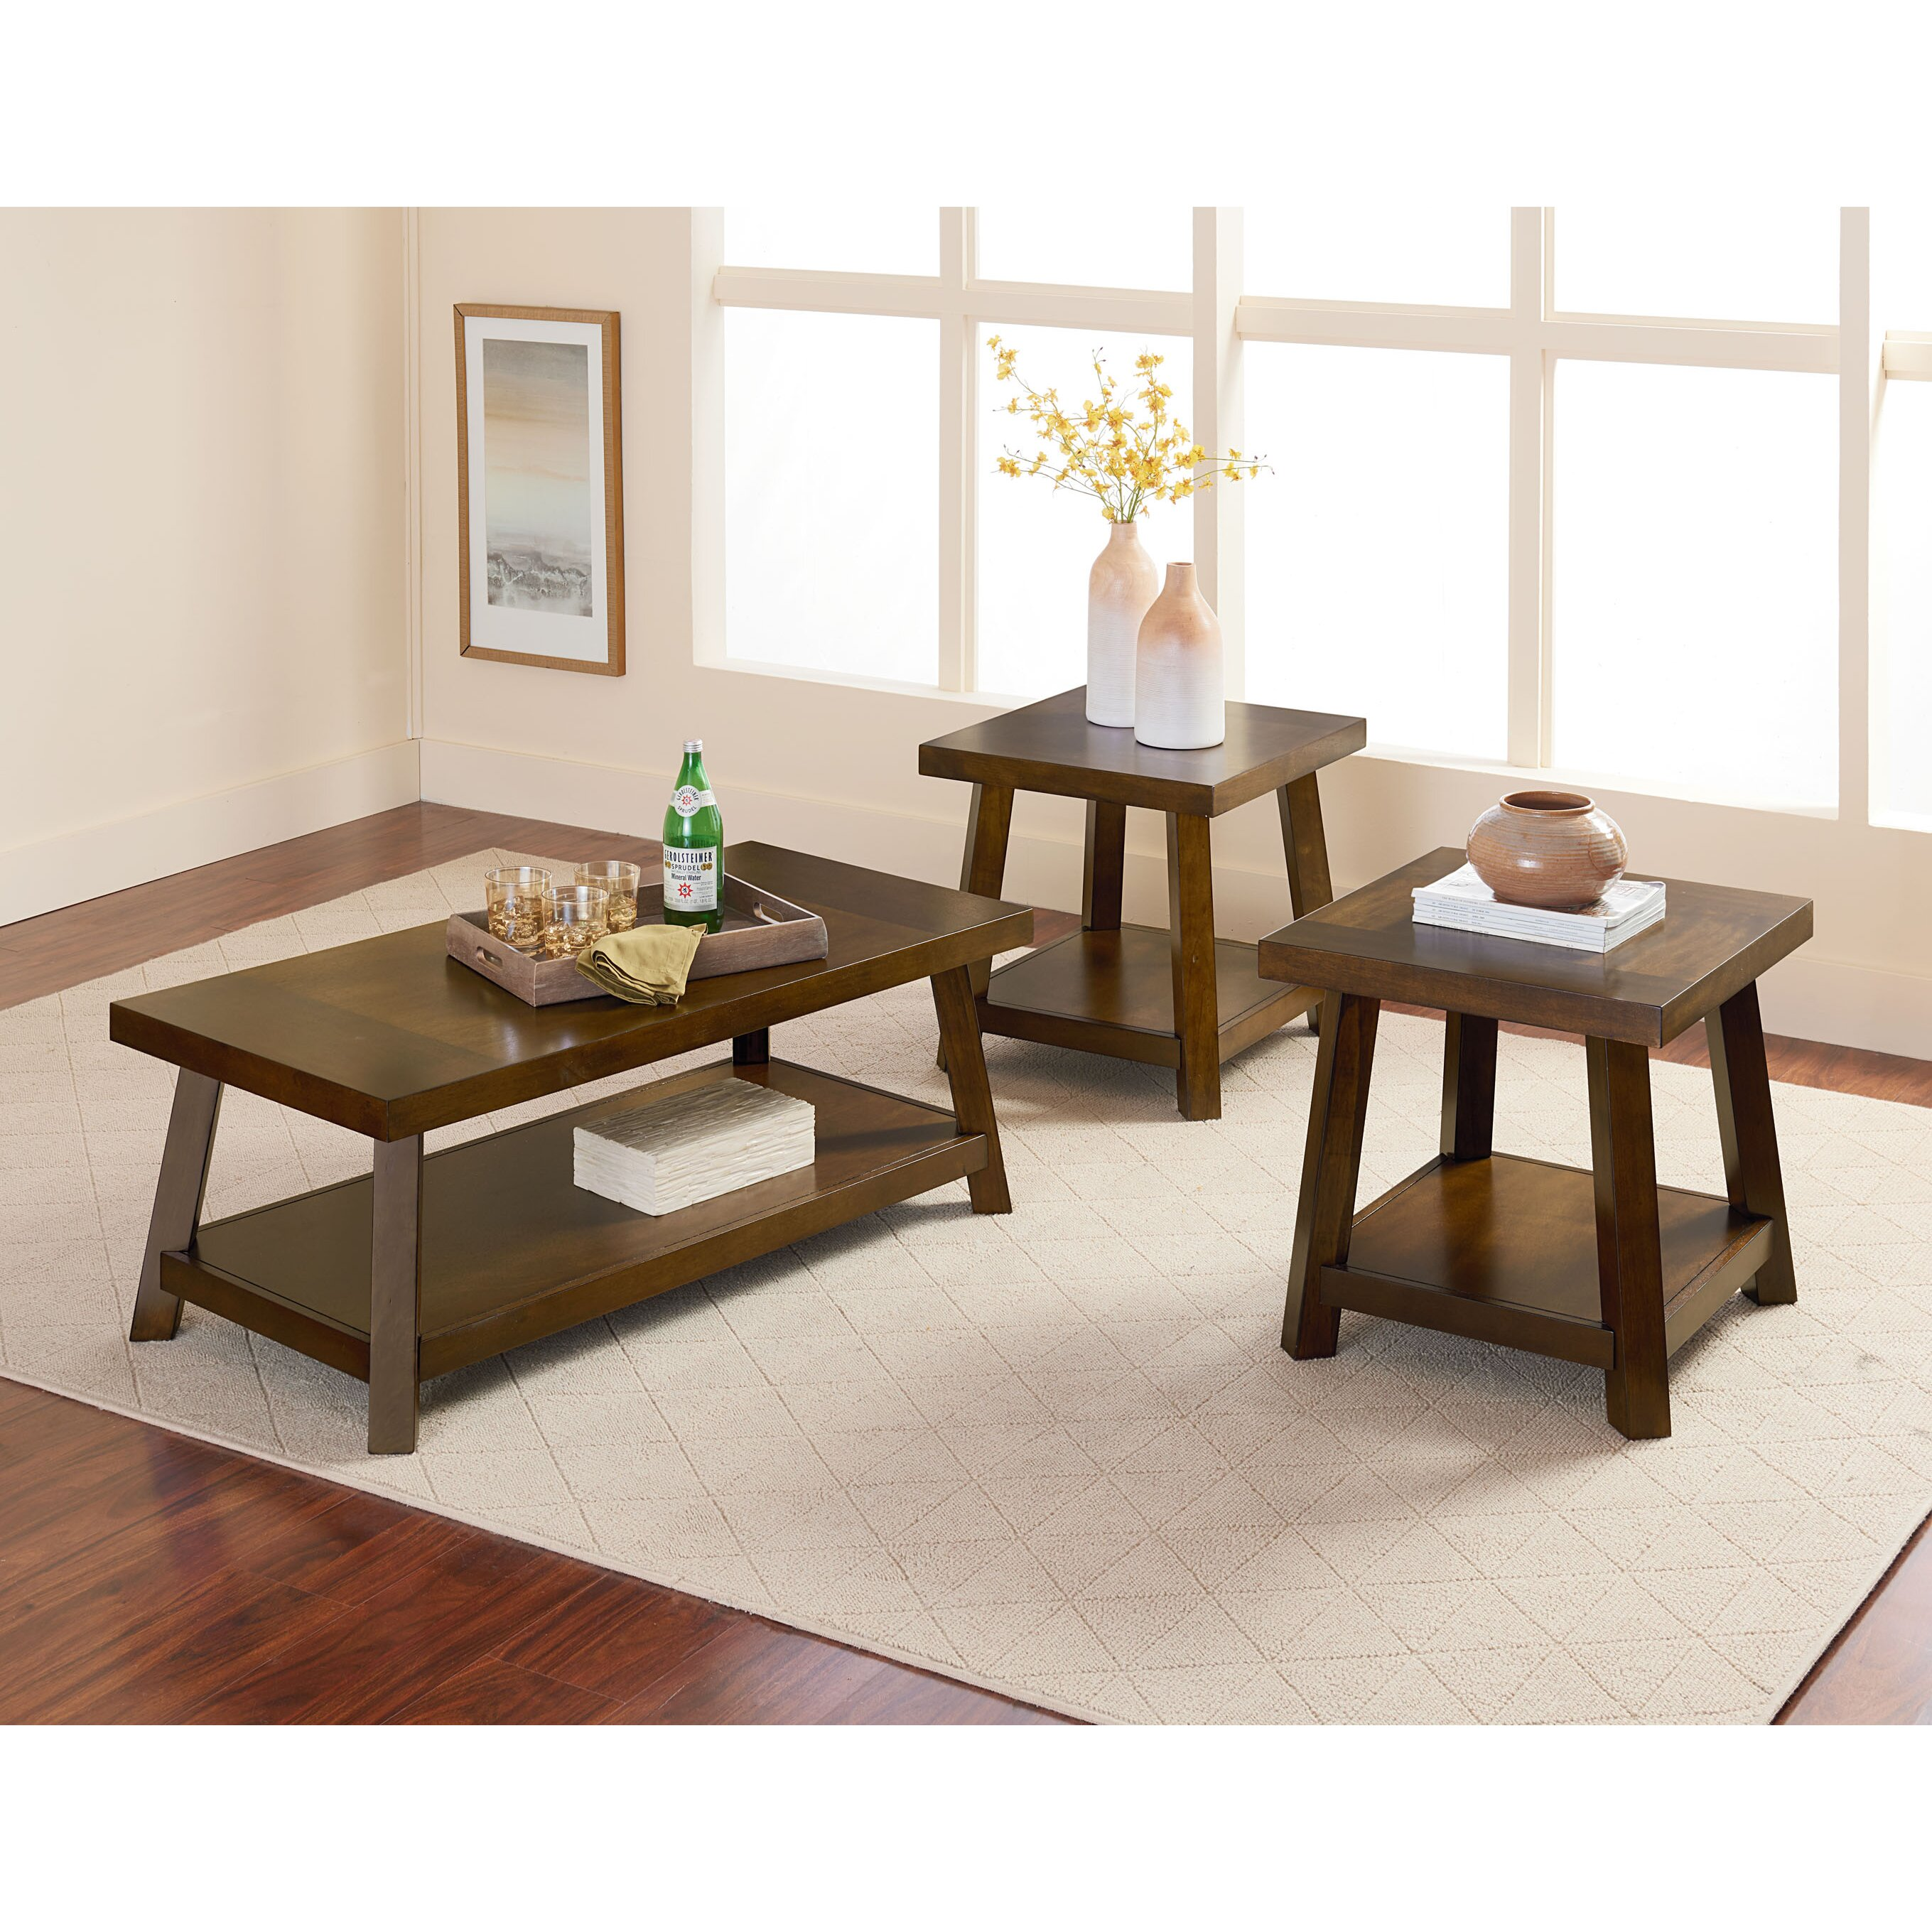 Red Barrel Studio North York 3 Piece Coffee Table Set